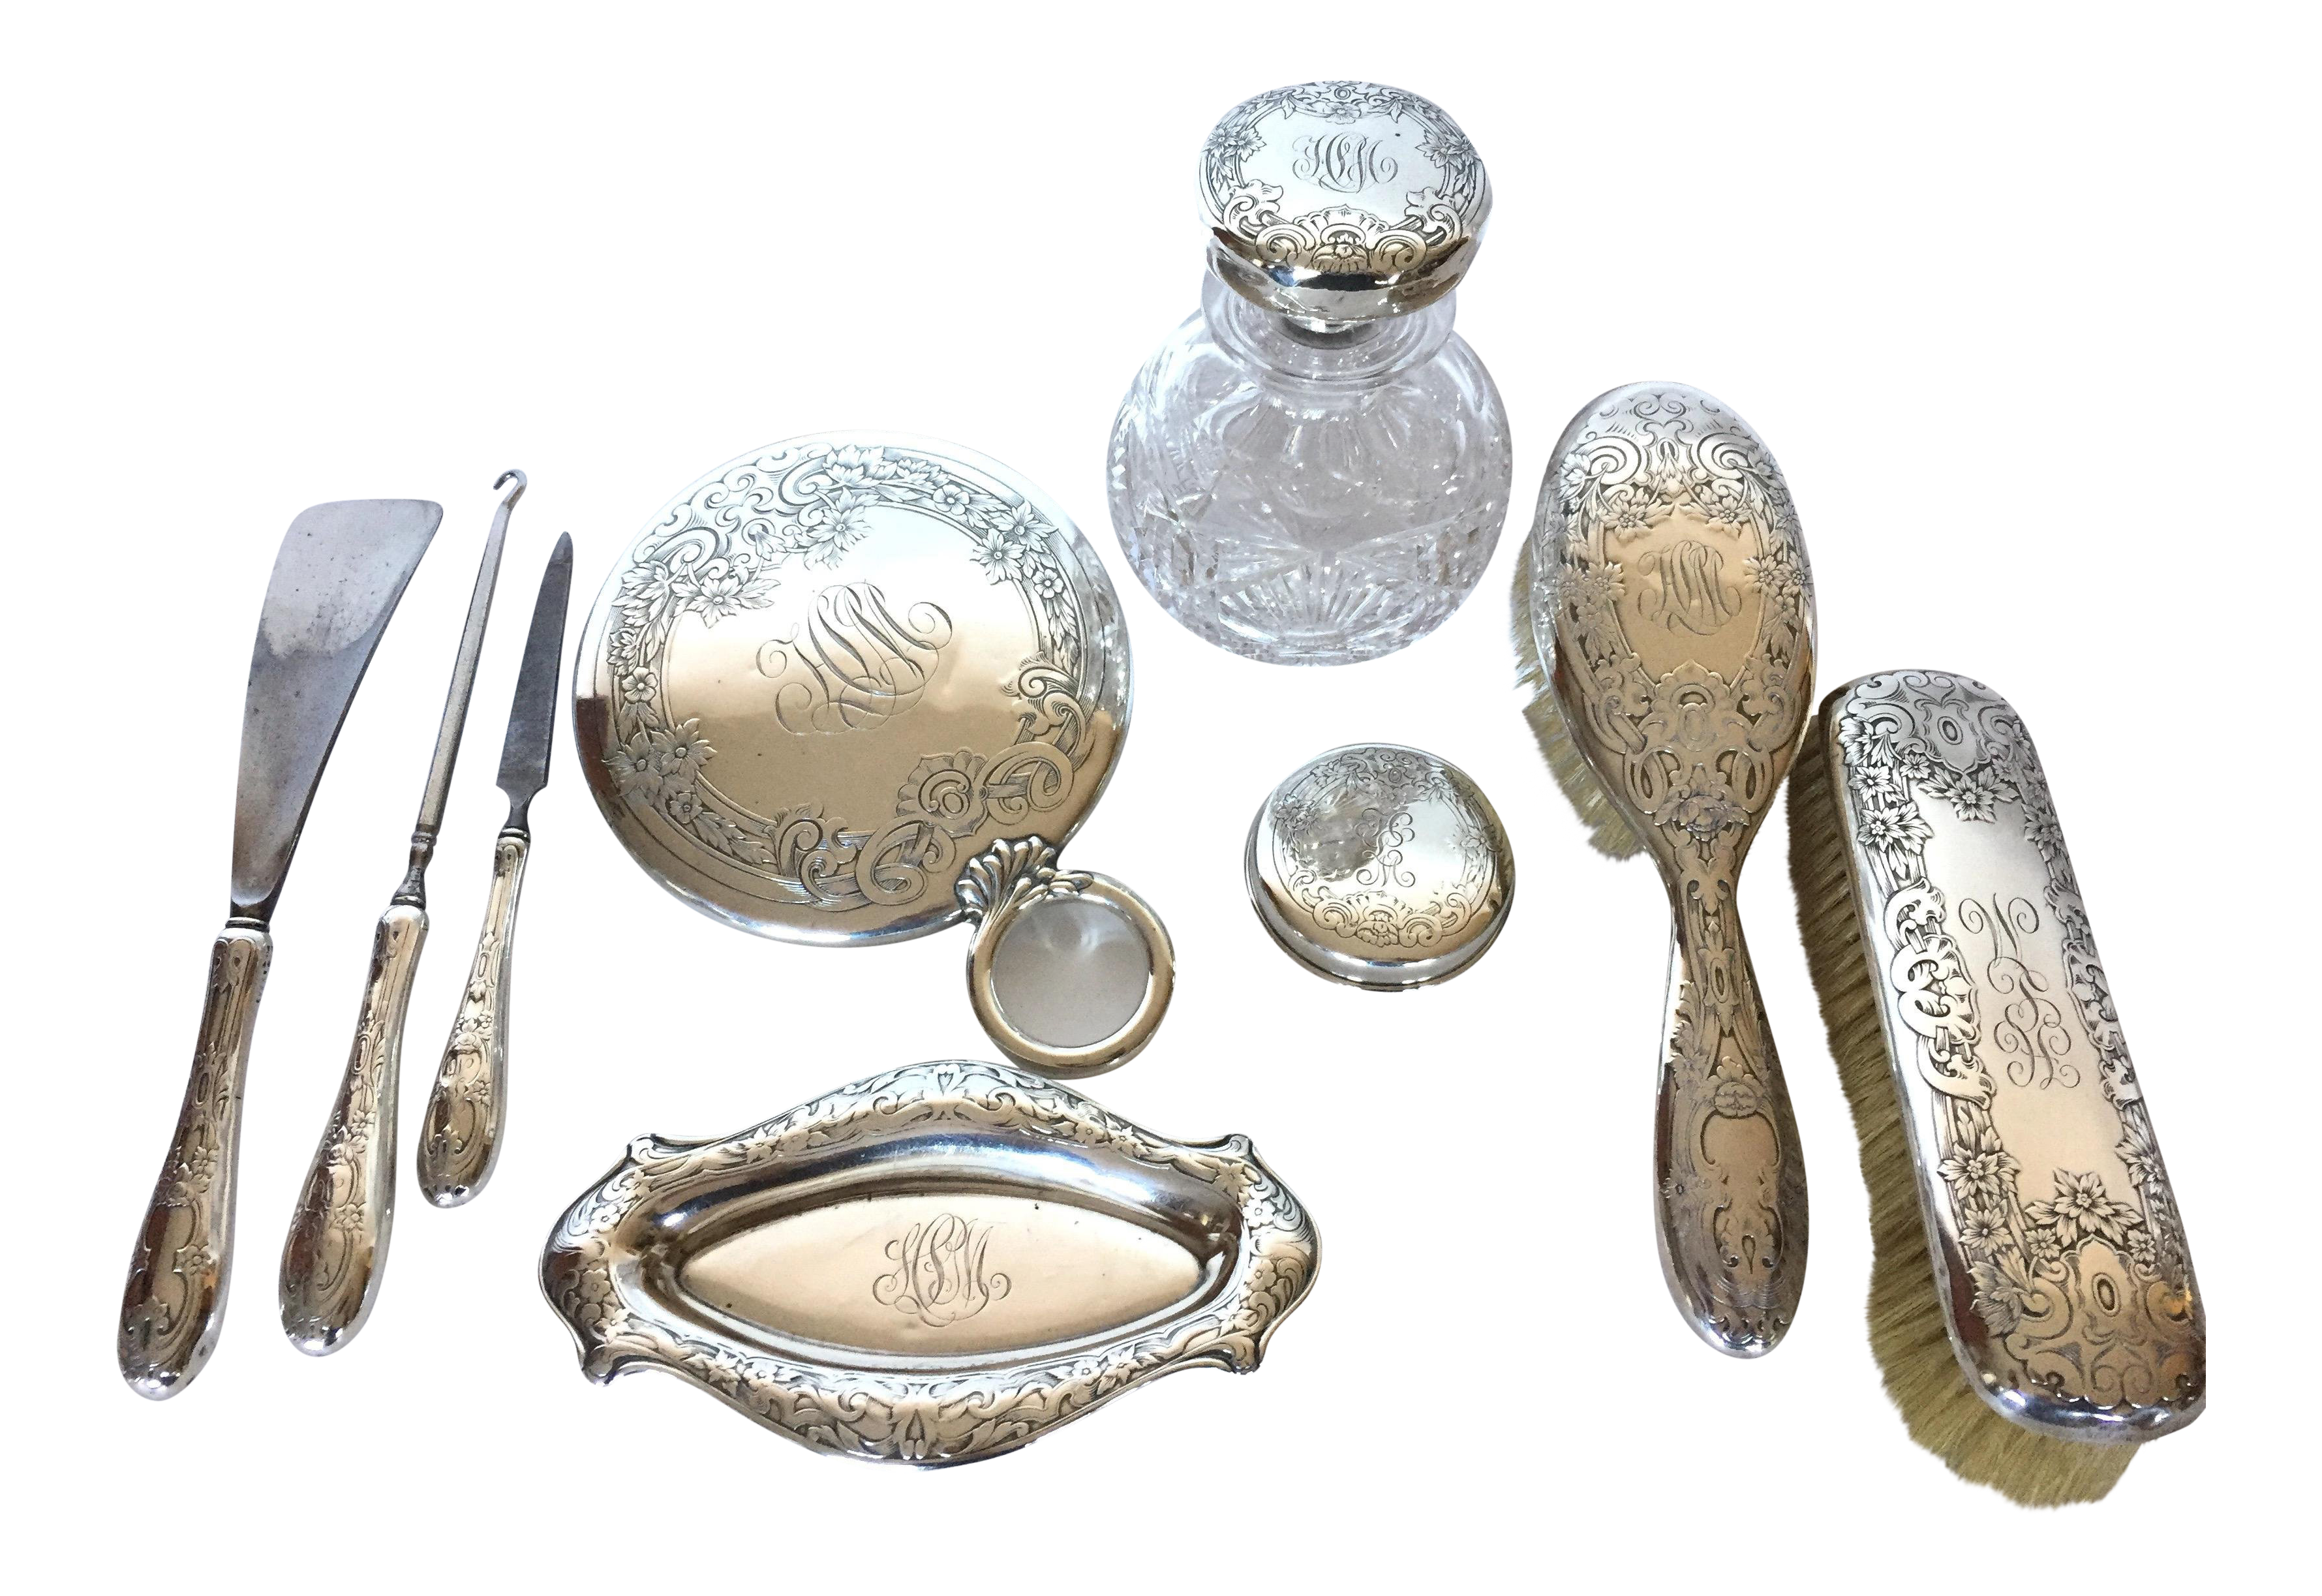 Late 19th Century Antique Sterling Silver Vanity Set By Gorham 10 Pieces Chairish